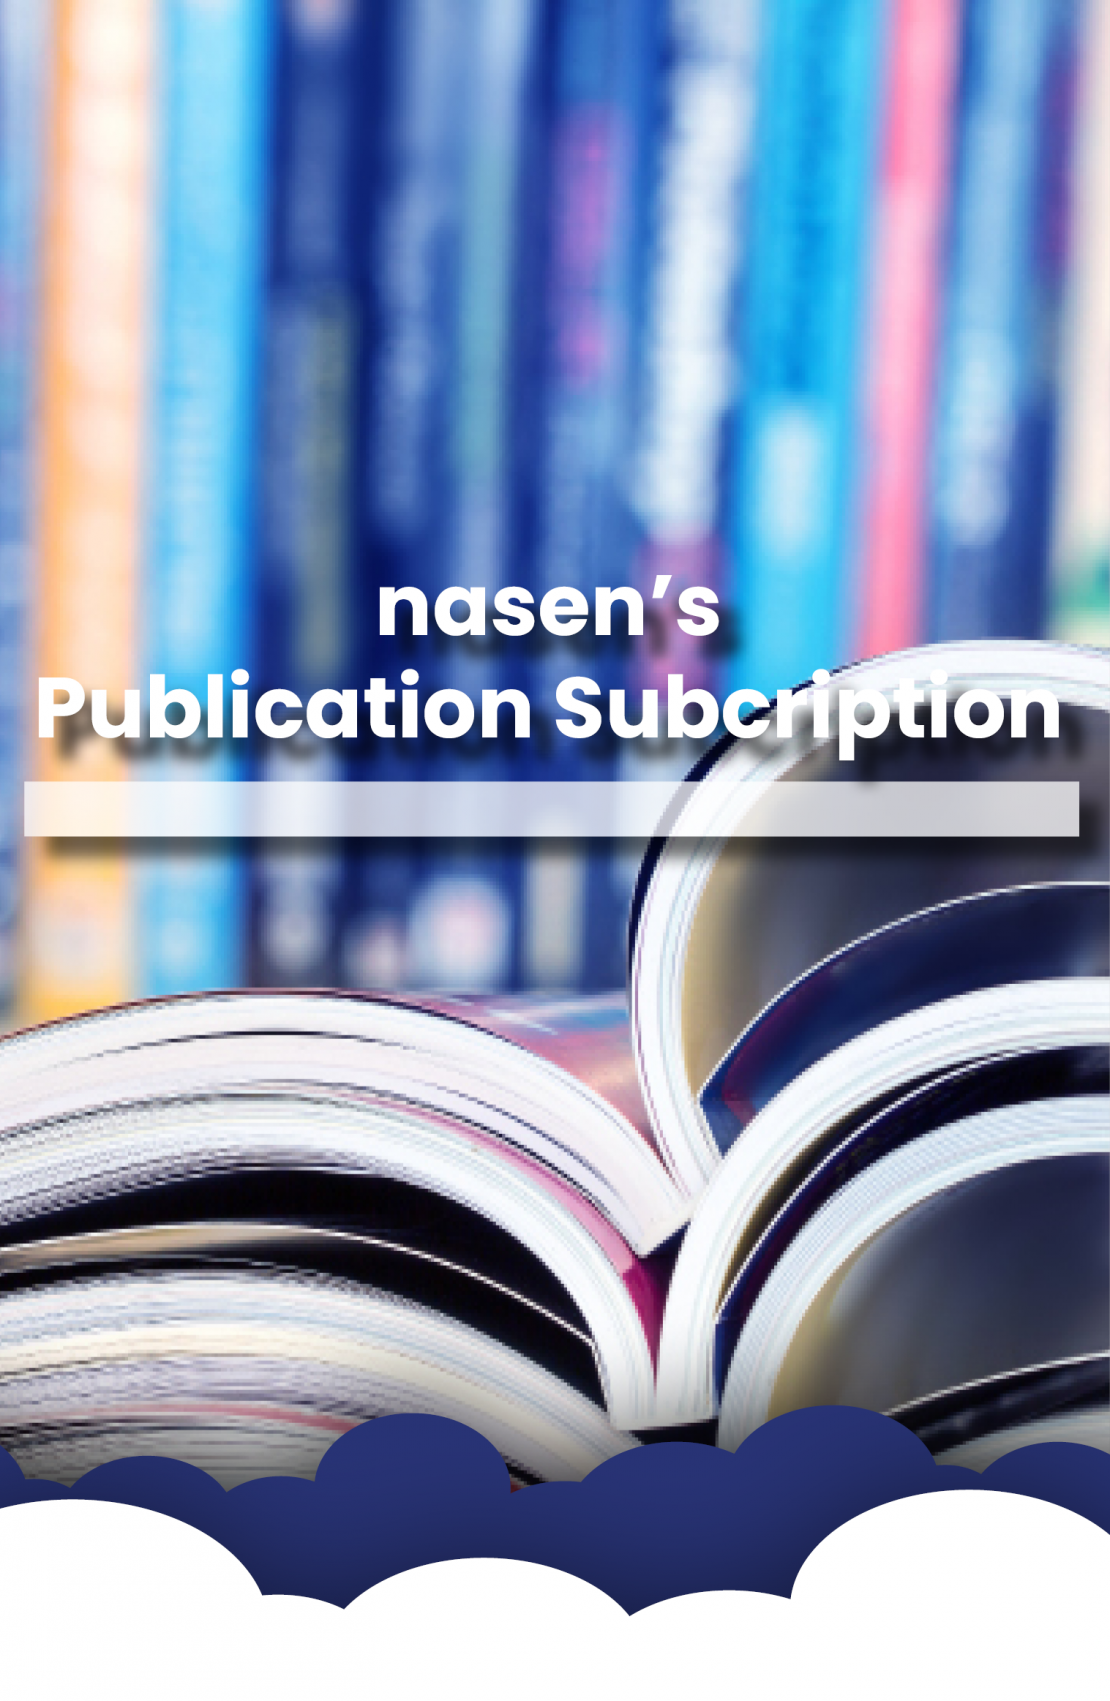 nasen's publication subscription written on top of an open book with blue & white clouds at the bottom